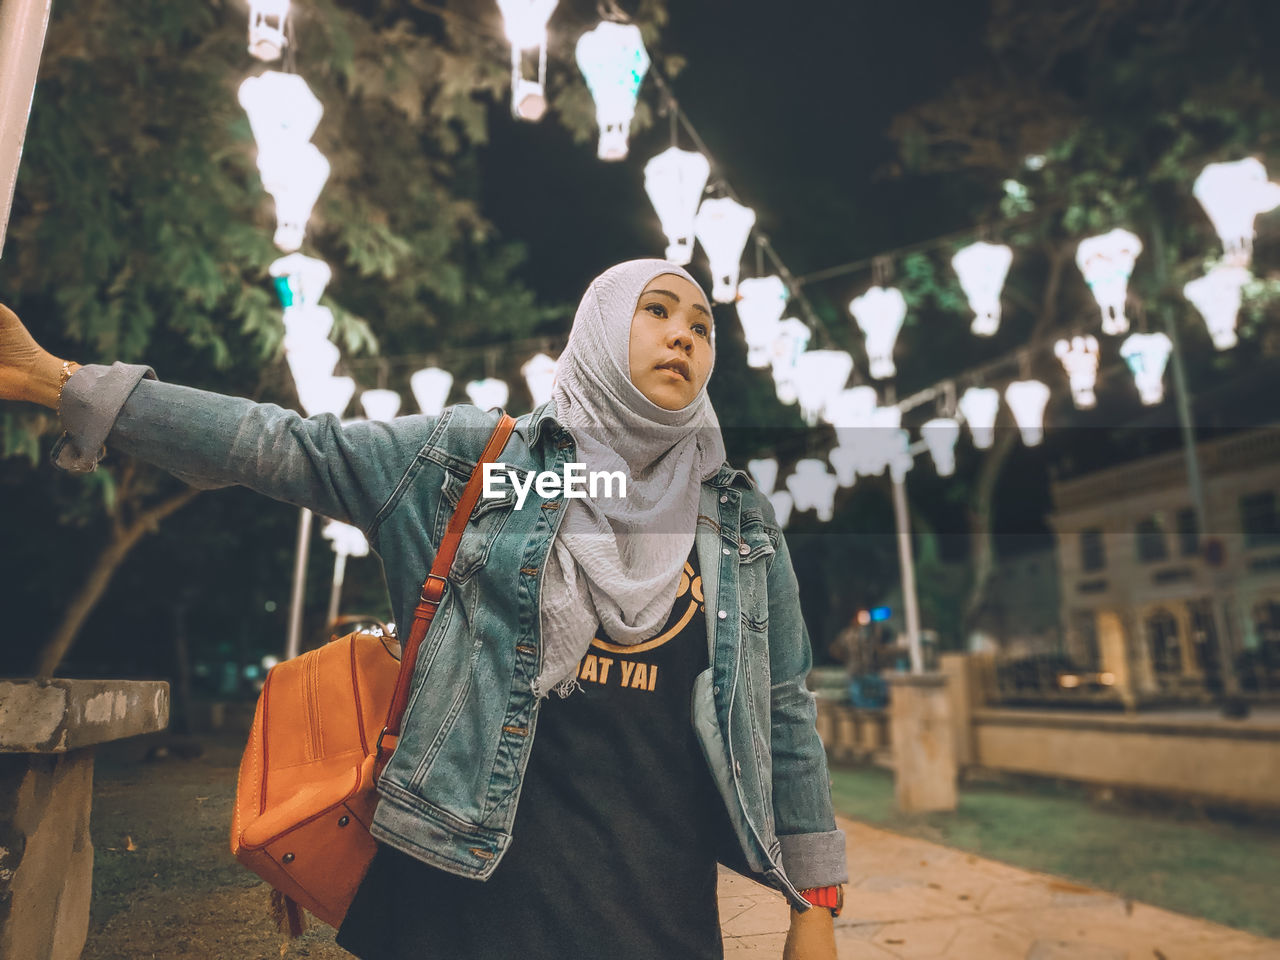 Woman standing against illuminated lights at night